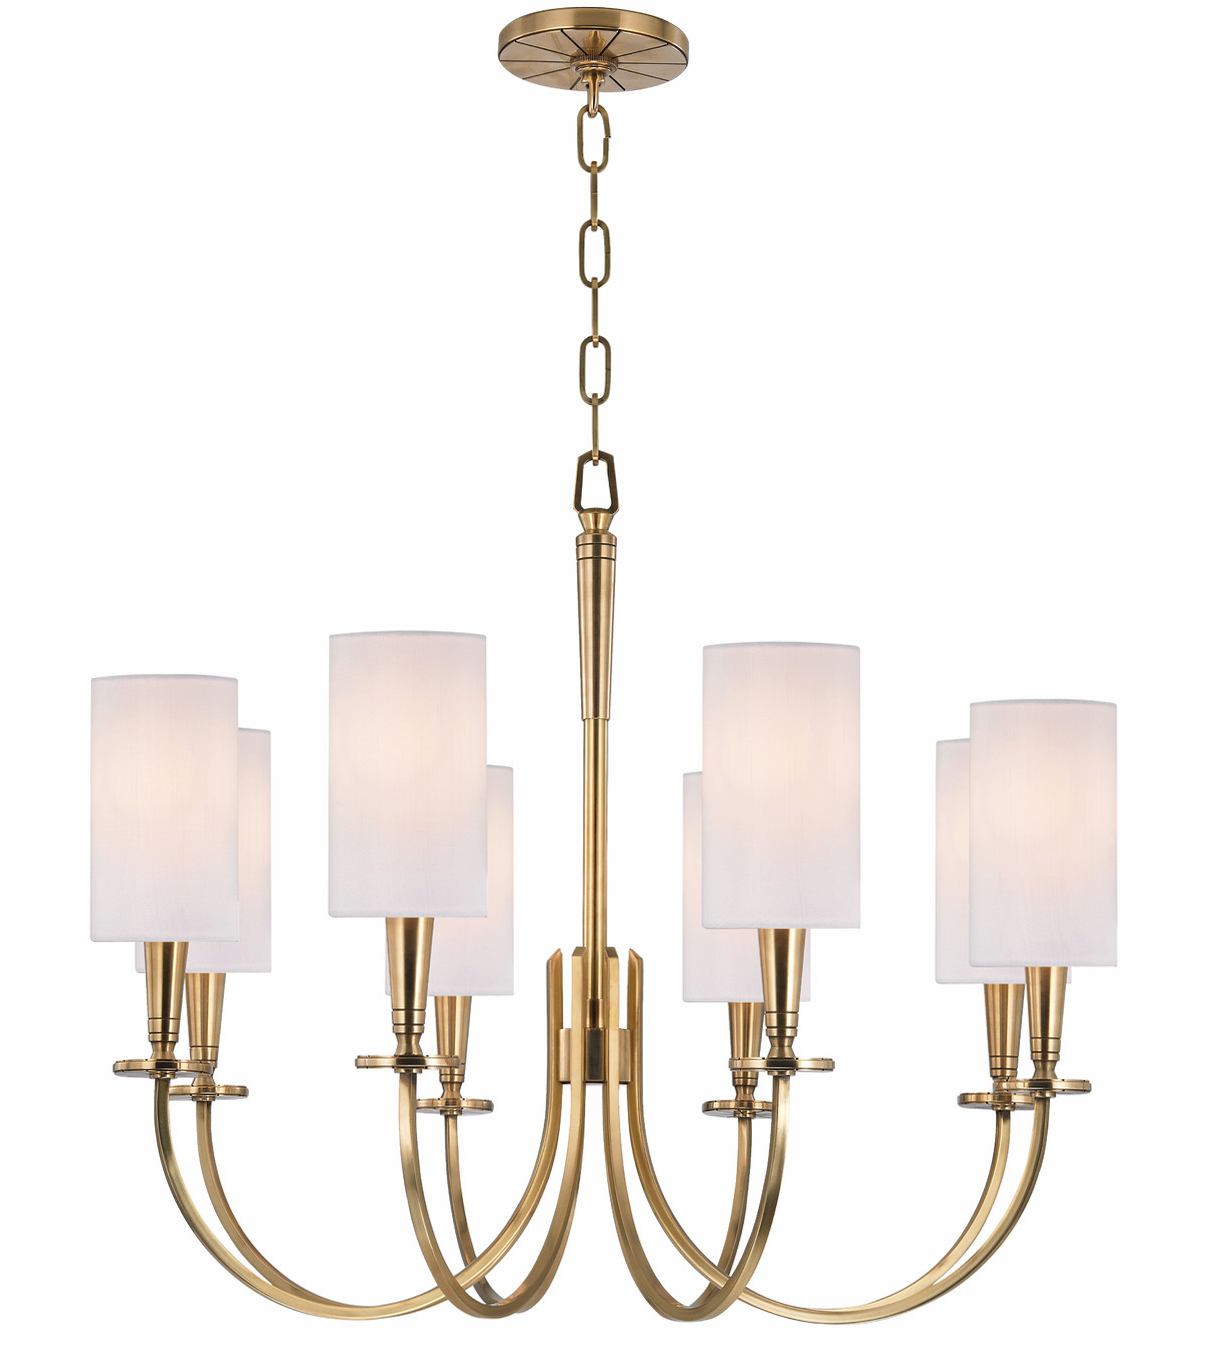 Am dolce vita a roundup of my favourite brass chandeliers a roundup of my favourite brass chandeliers arubaitofo Images